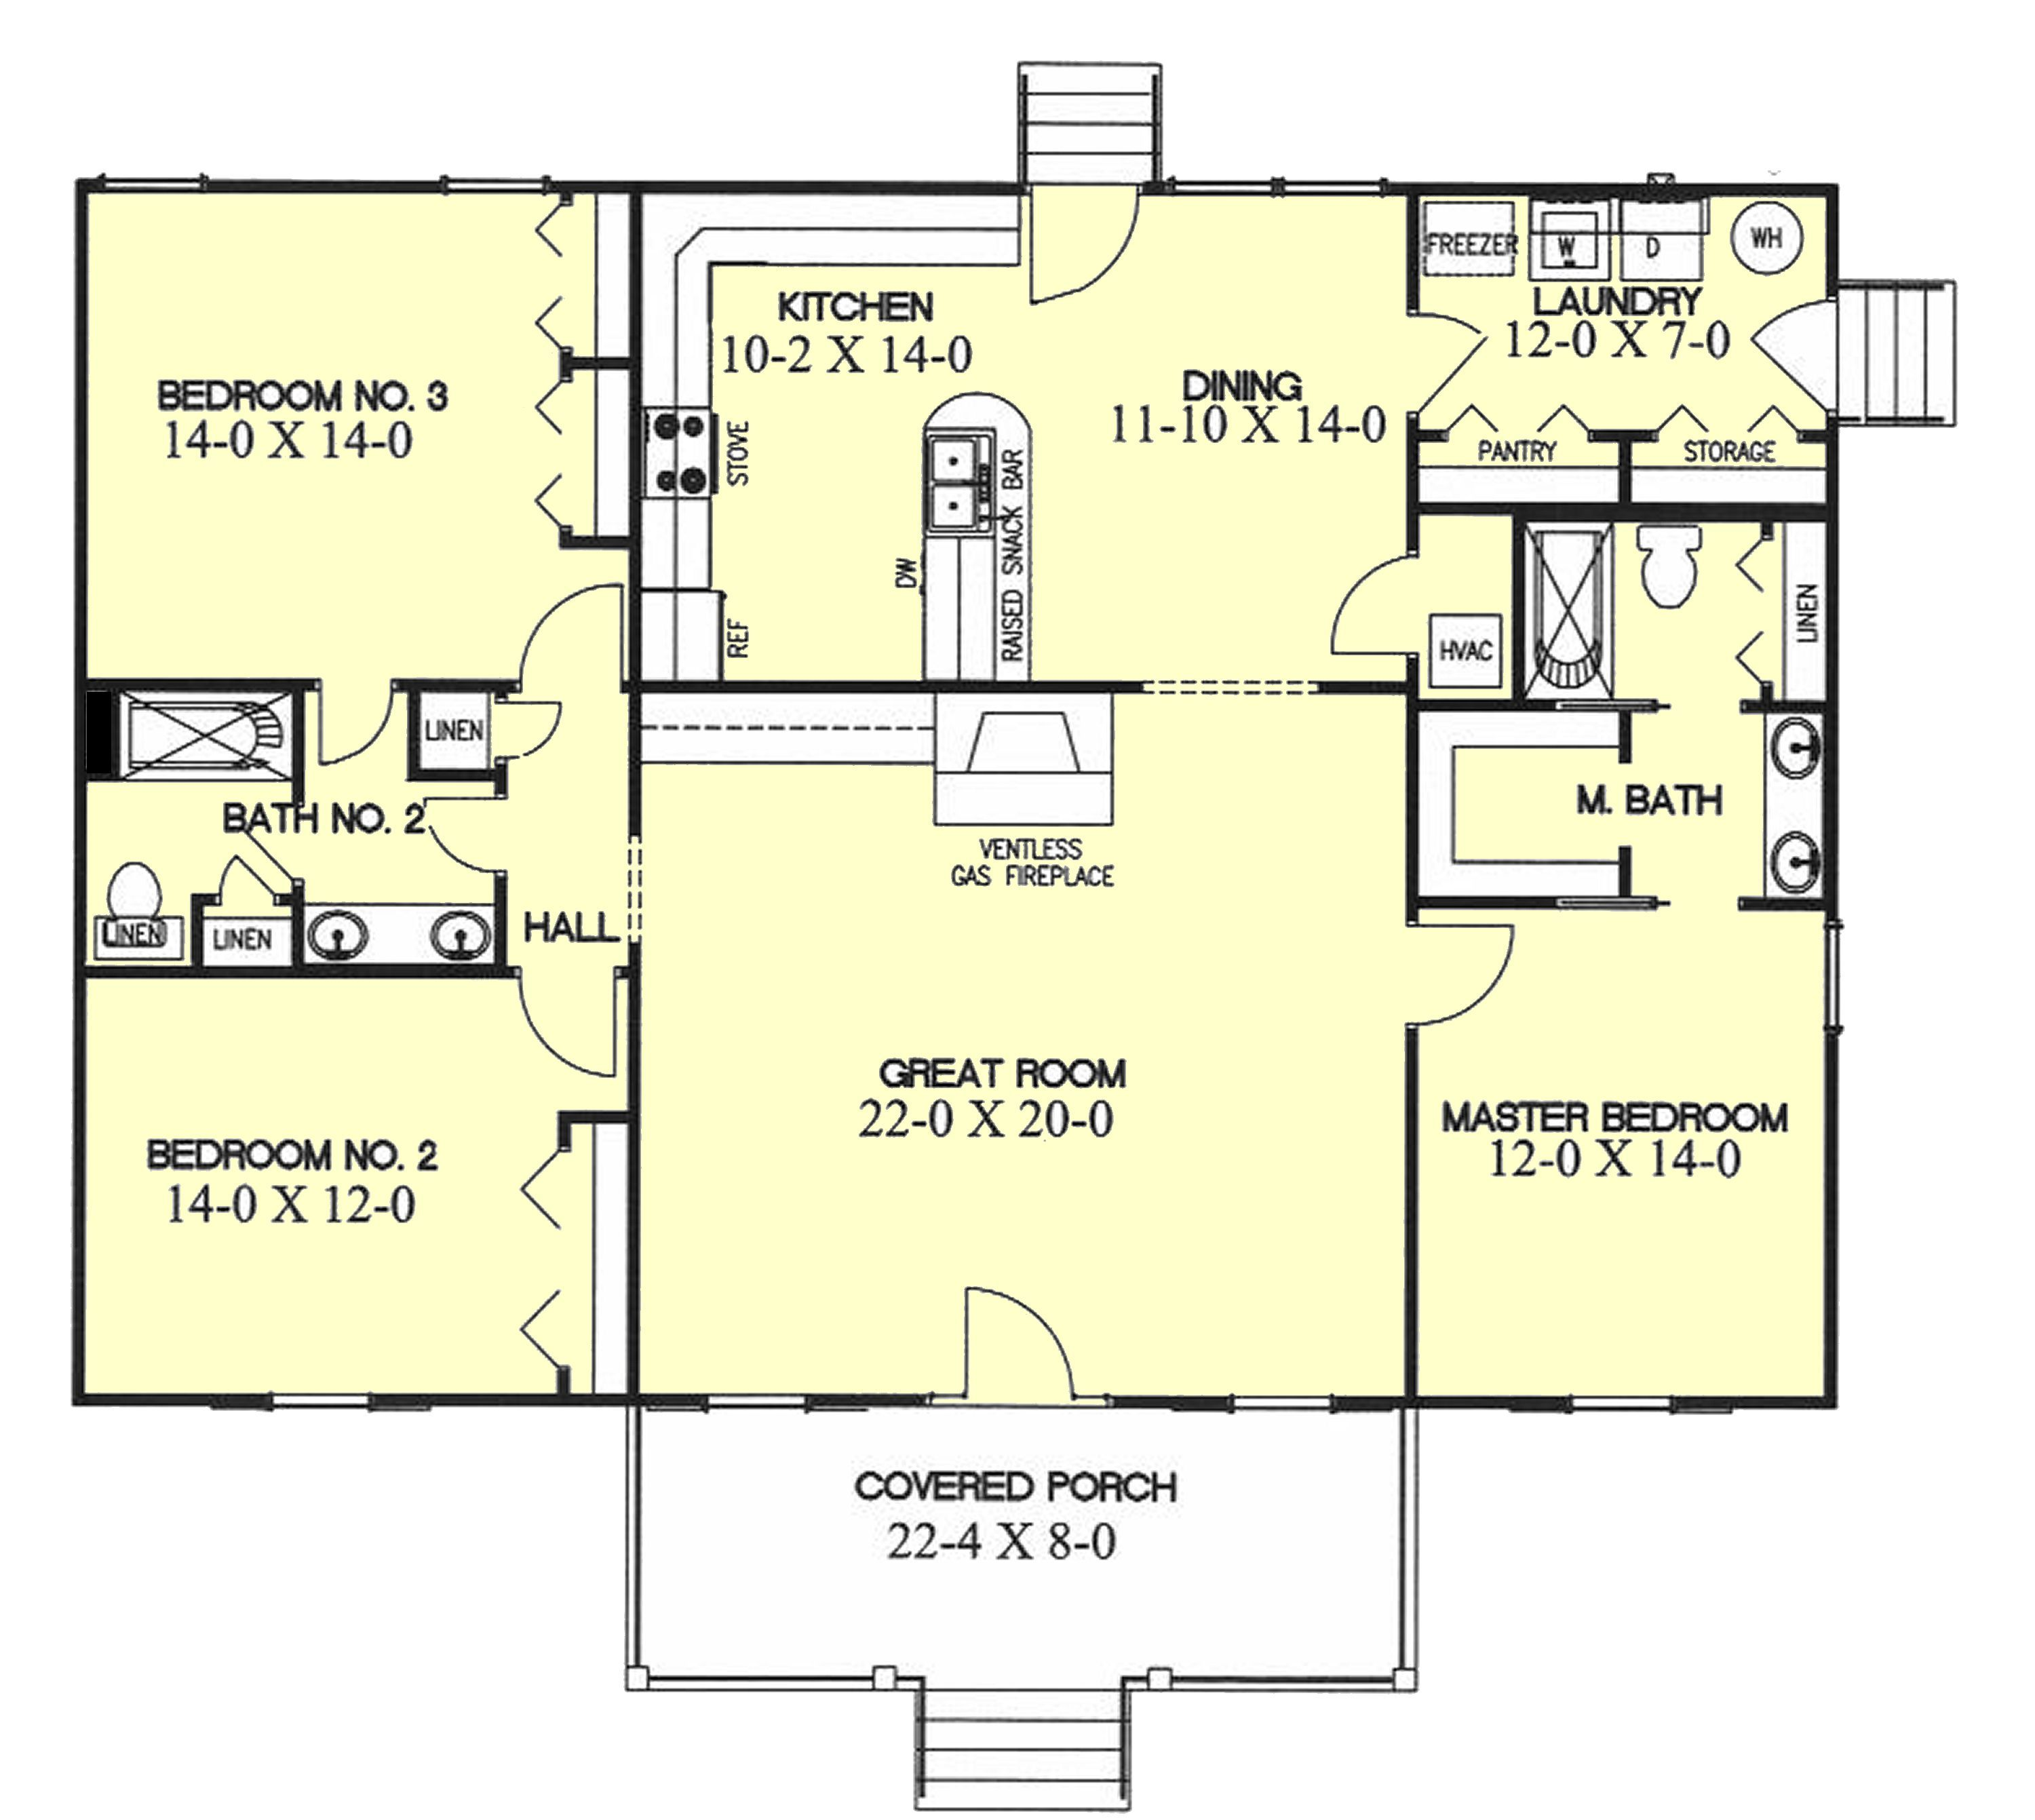 Ranch Style House Plan 3 Beds 2 Baths 1700 Sq Ft Plan 44 104 Ranch Style House Plans New House Plans Ranch House Plans